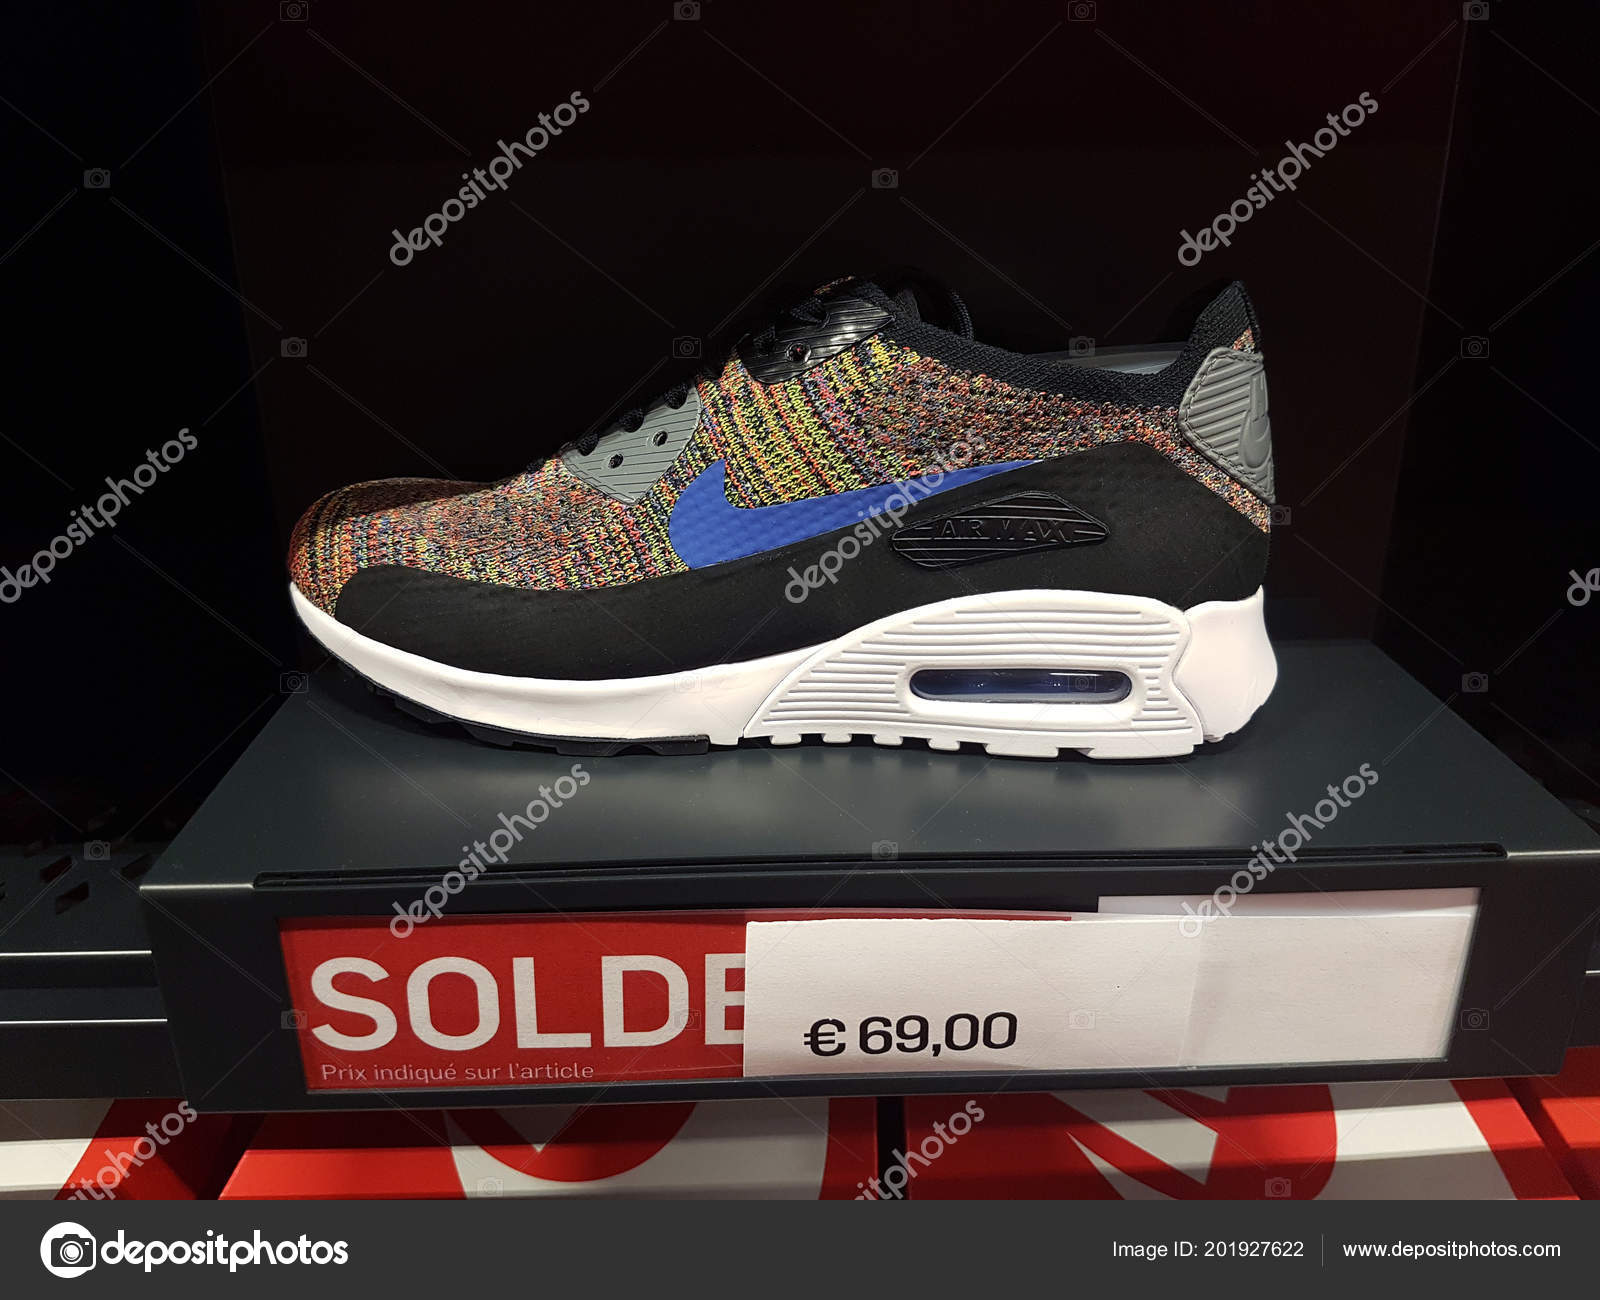 quality design 0d640 5bfe3 Villefontaine, France - July 29 2018 Multicolor Nike Air Max Shoe On  Display in Nike Outlet Store at The Village Outlet Shopping, Sale Price  Sign in French ...